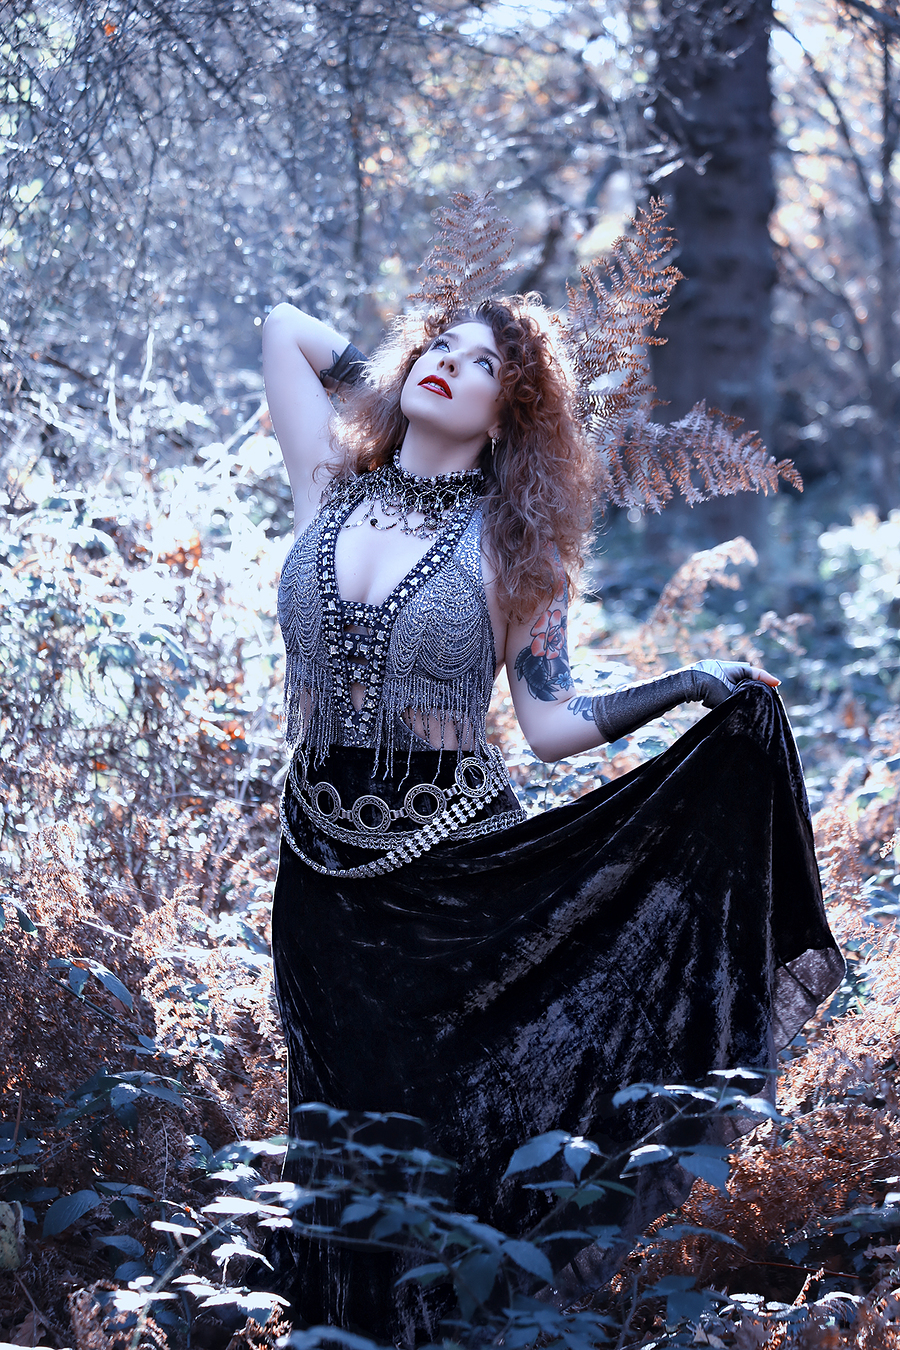 Morning in the Enchanted Forest / Photography by Sam Stormwolf, Makeup by Sam Stormwolf, Post processing by Sam Stormwolf / Uploaded 11th June 2019 @ 02:20 PM